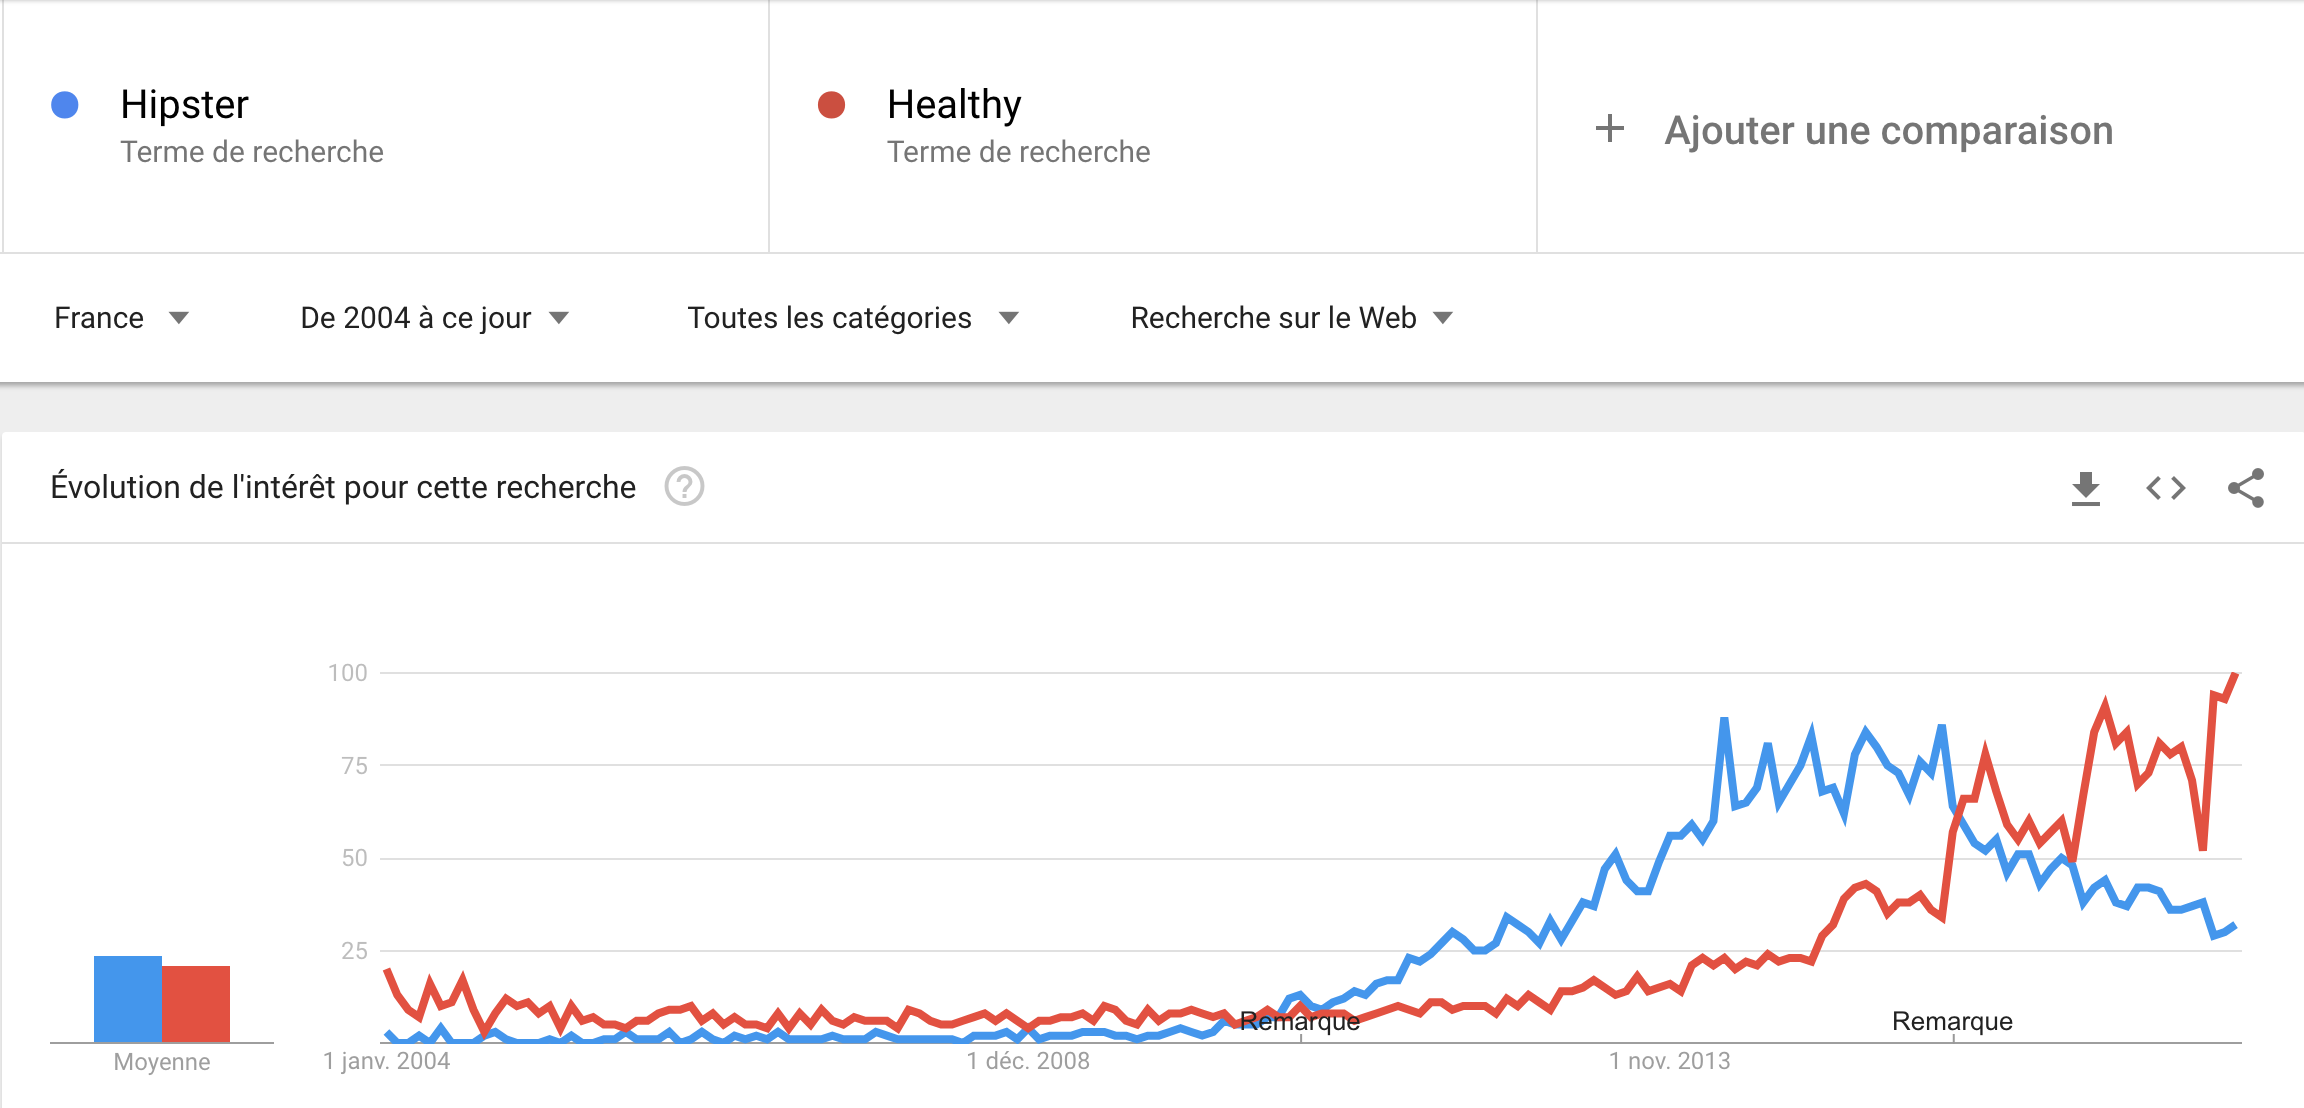 Google Trends Hipster vs Healthy.png